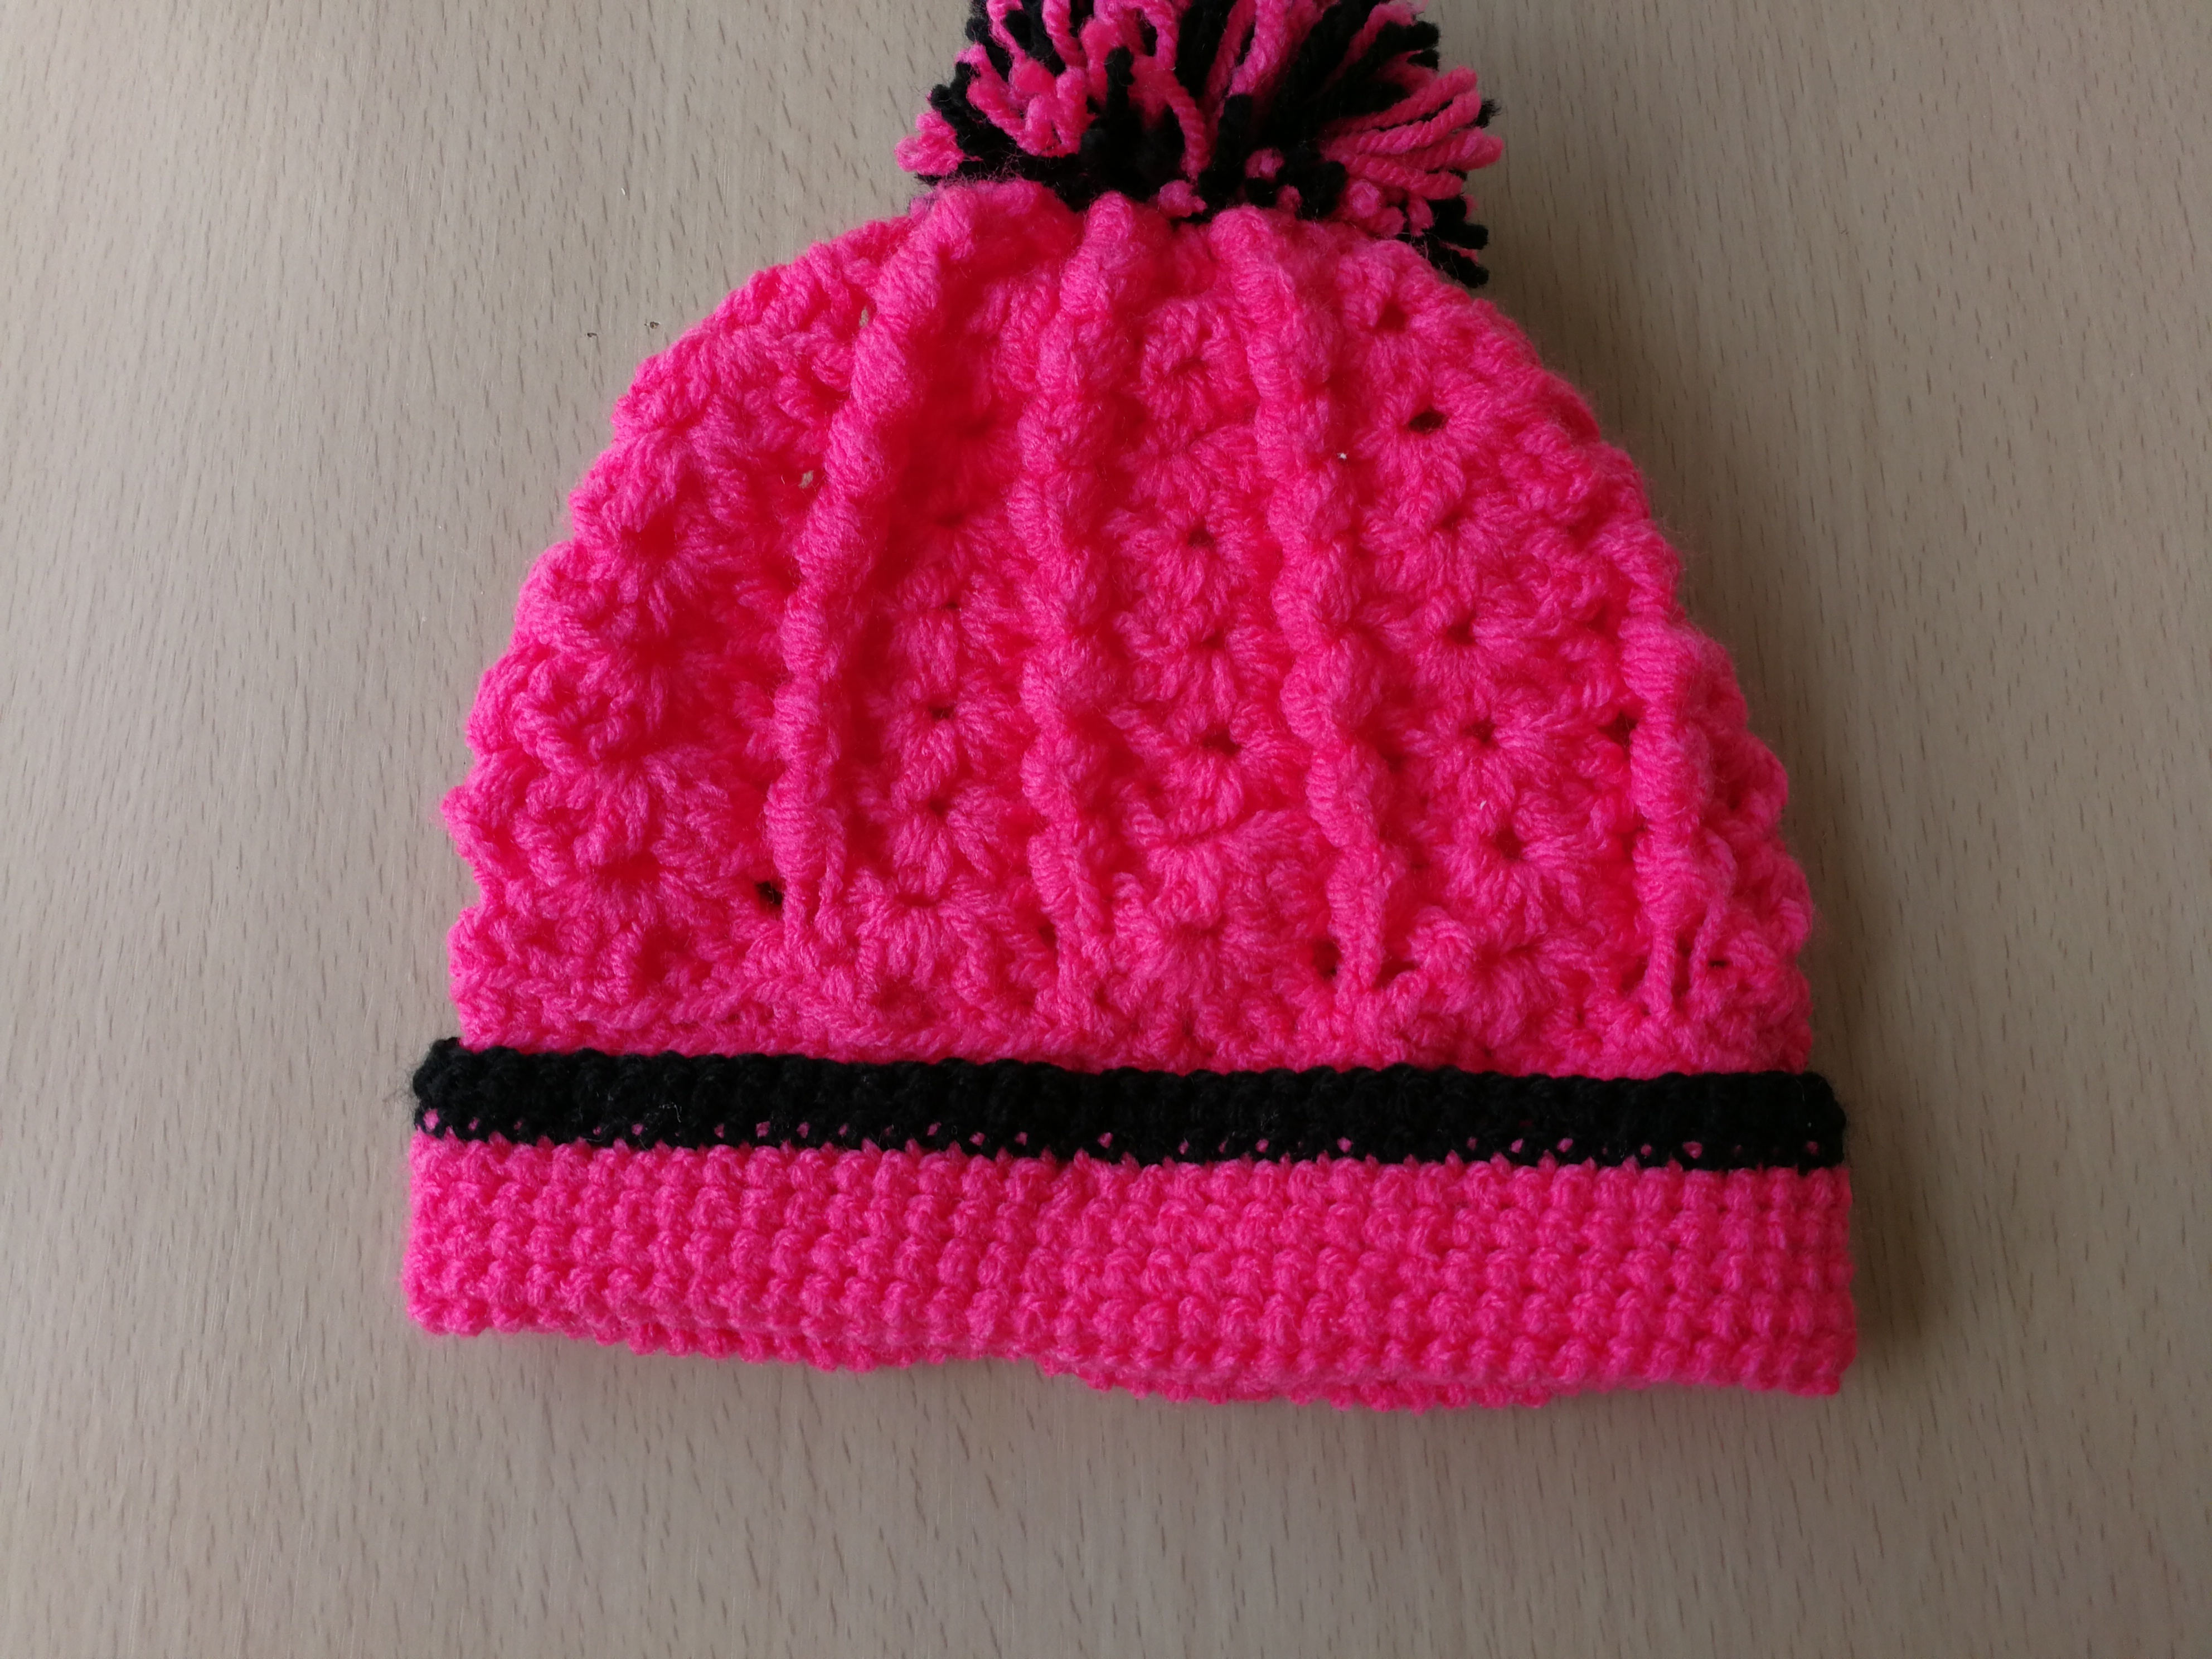 e8e1ccfd79b Bright pink and black babies beanie hat by Crazycrochetgran on Zibbet